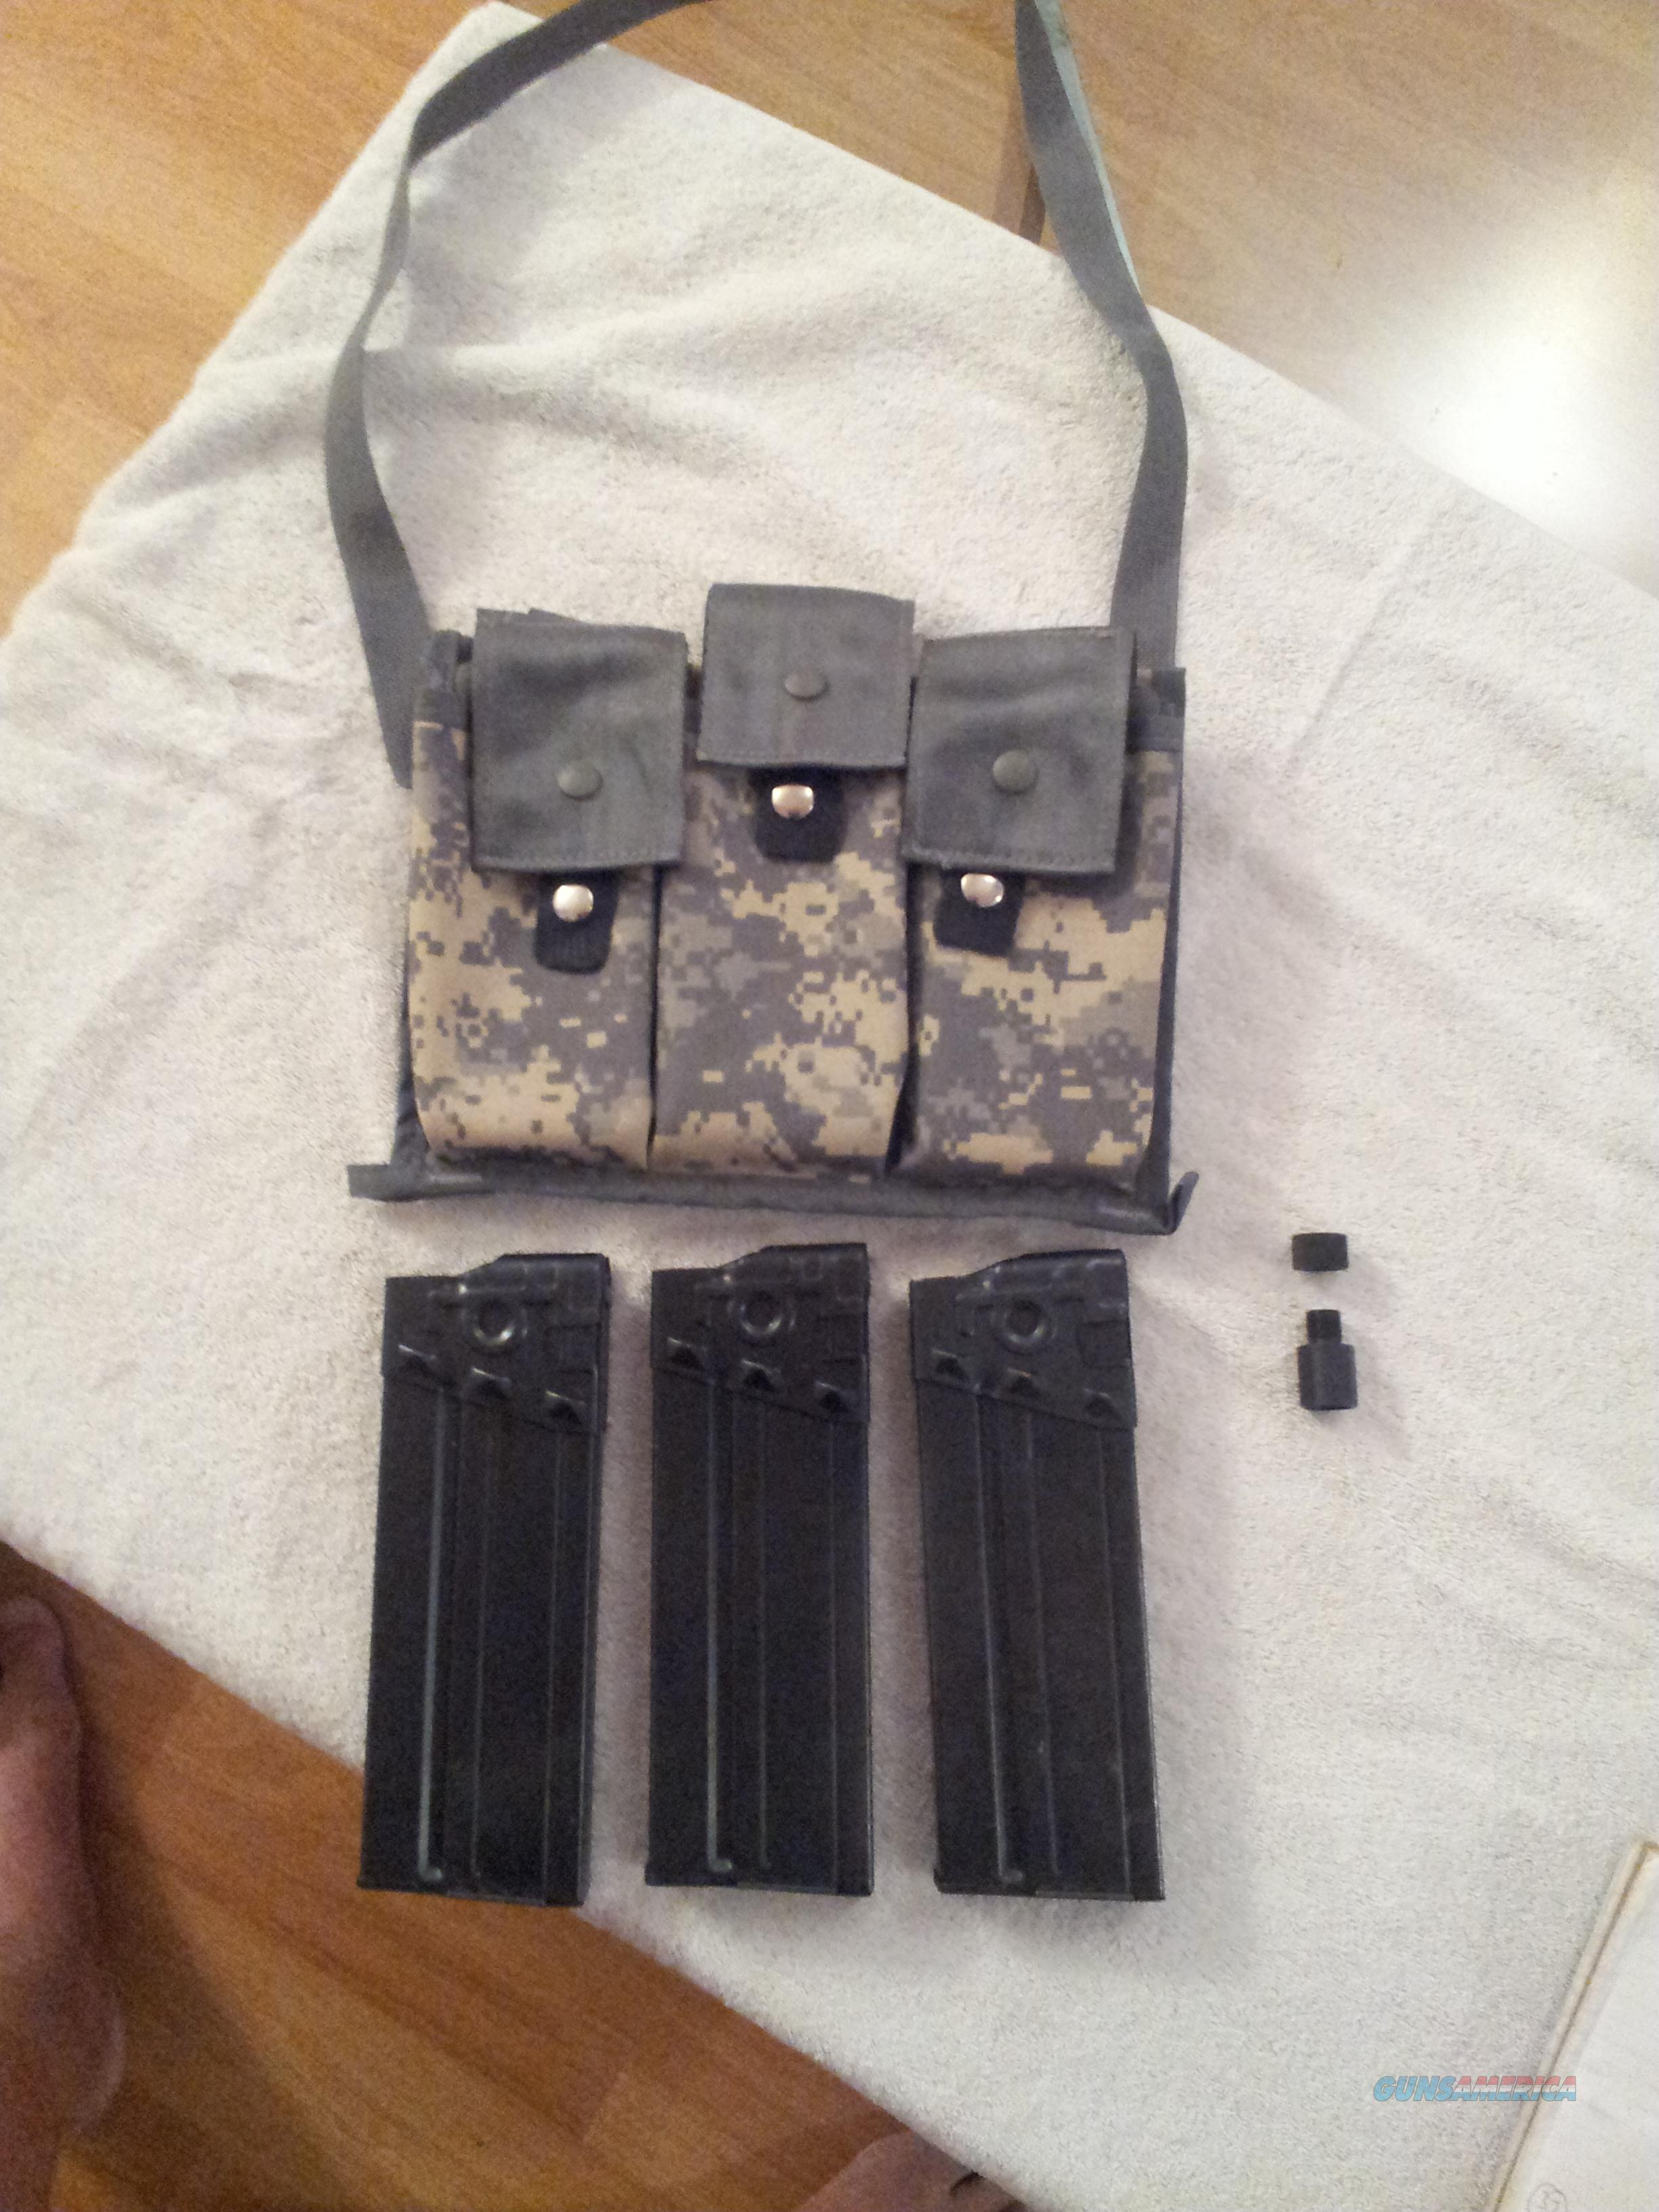 HK 91 51 G3  308 30rd Magazine package deal